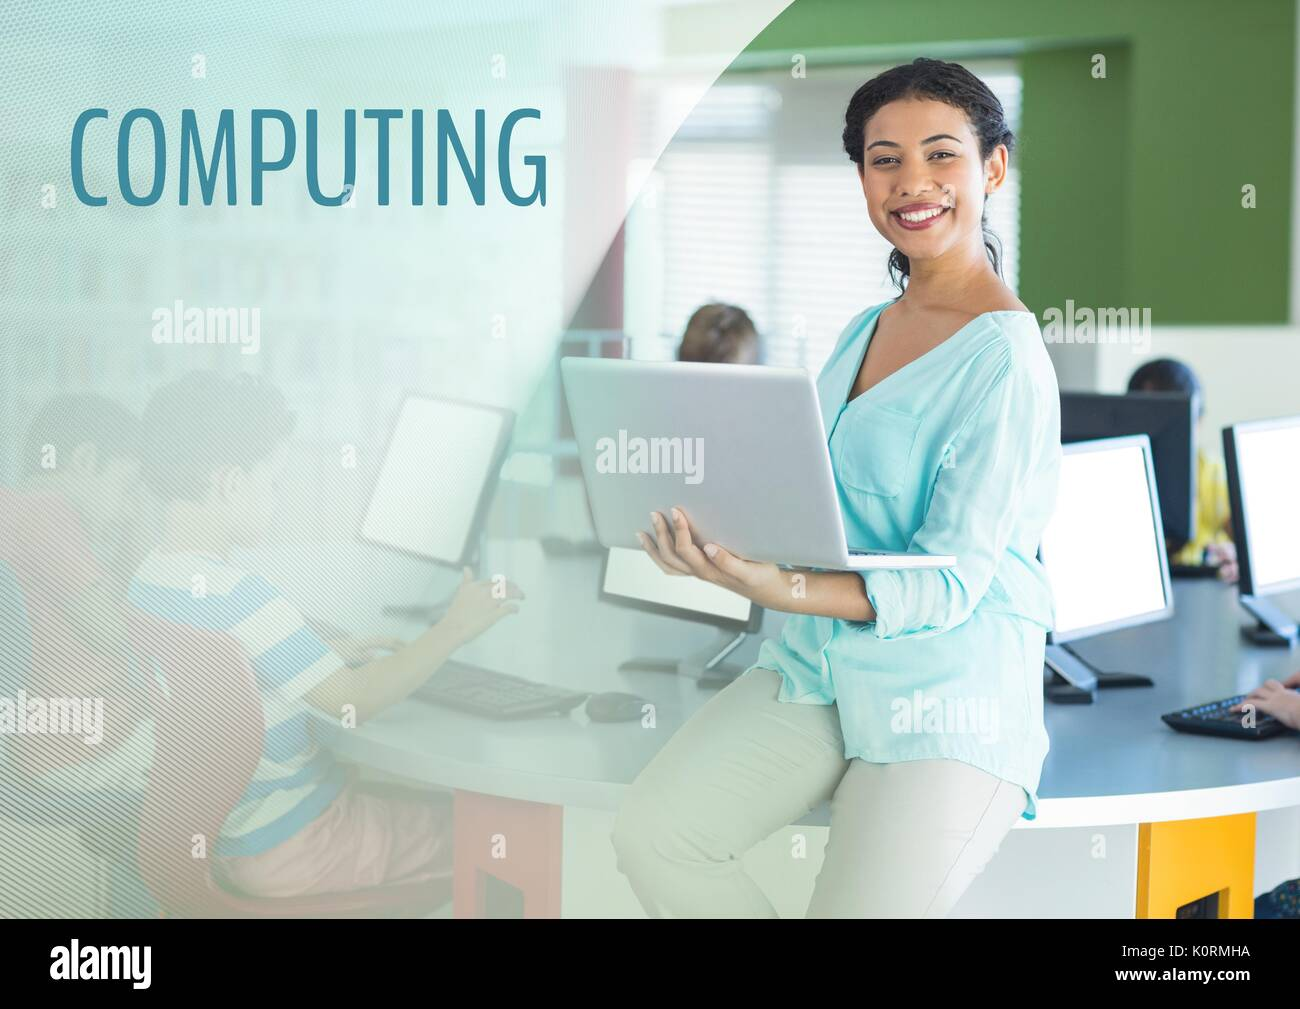 Digital composite of Computing text and Teacher with class in computer room - Stock Image